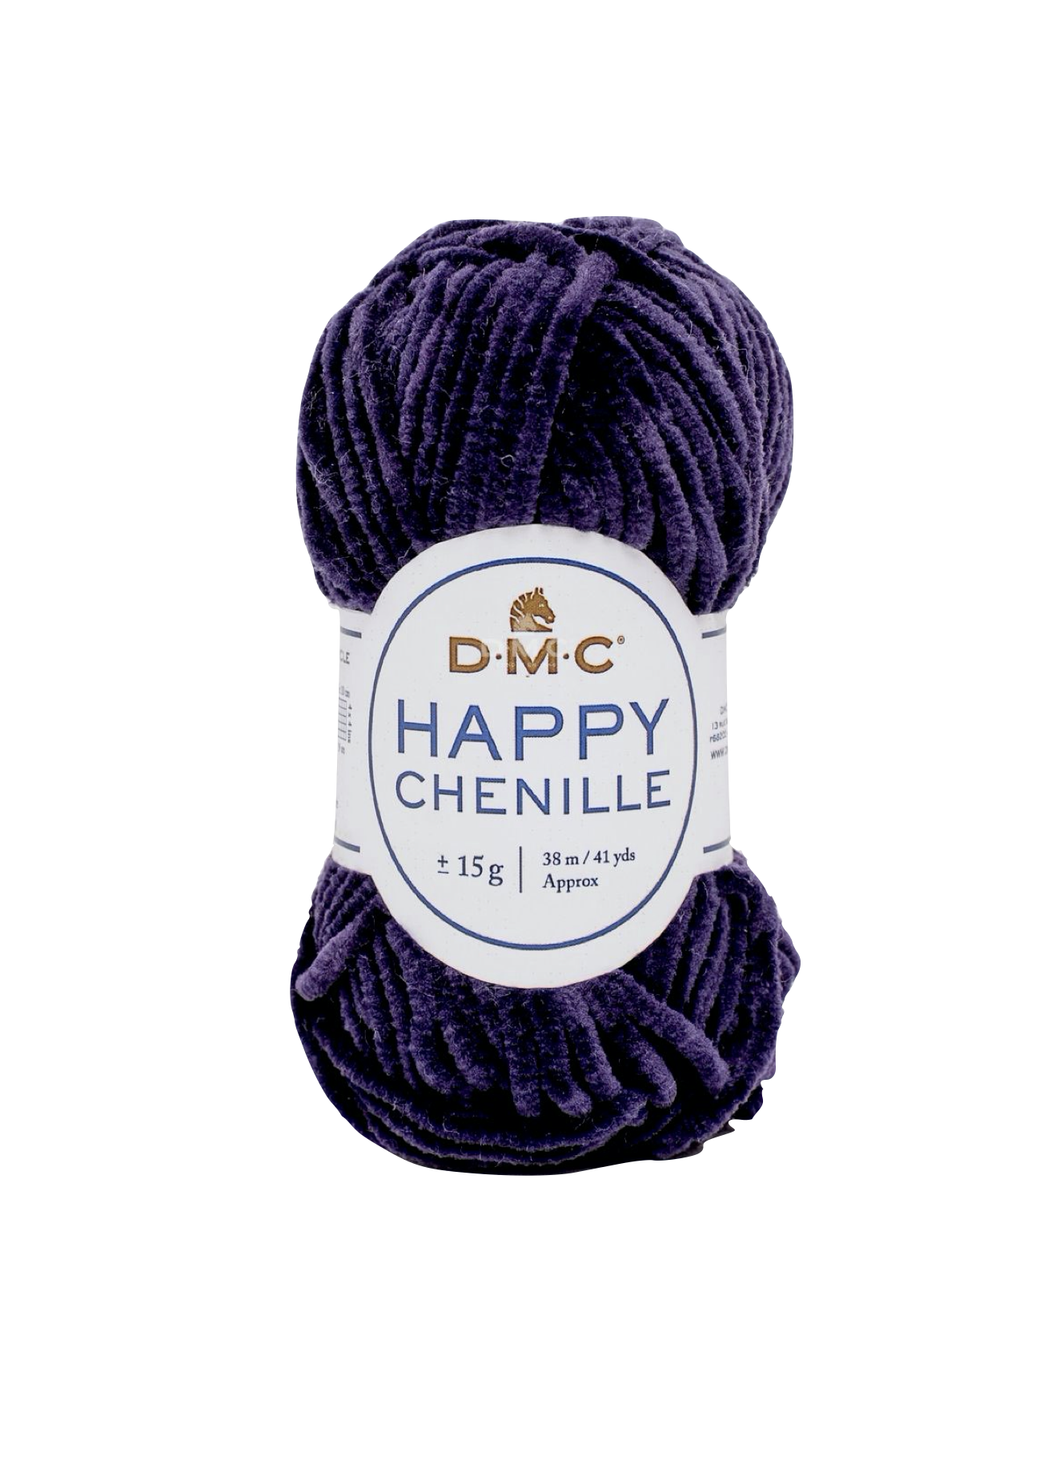 Happy Chenille 15g - Queenie